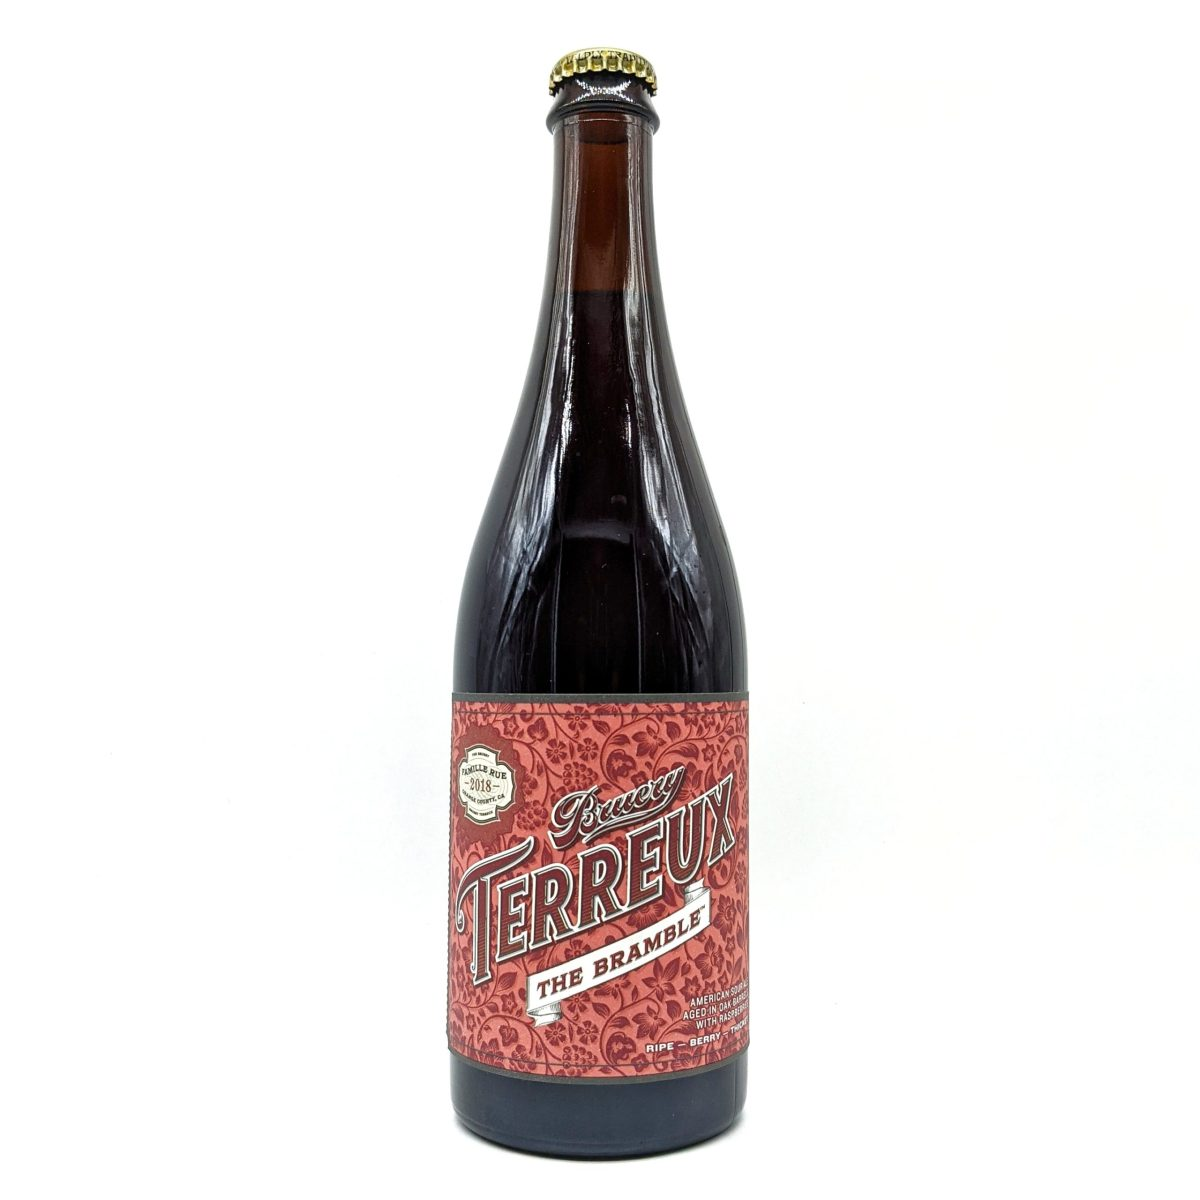 The Bramble - The Bruery Terreux